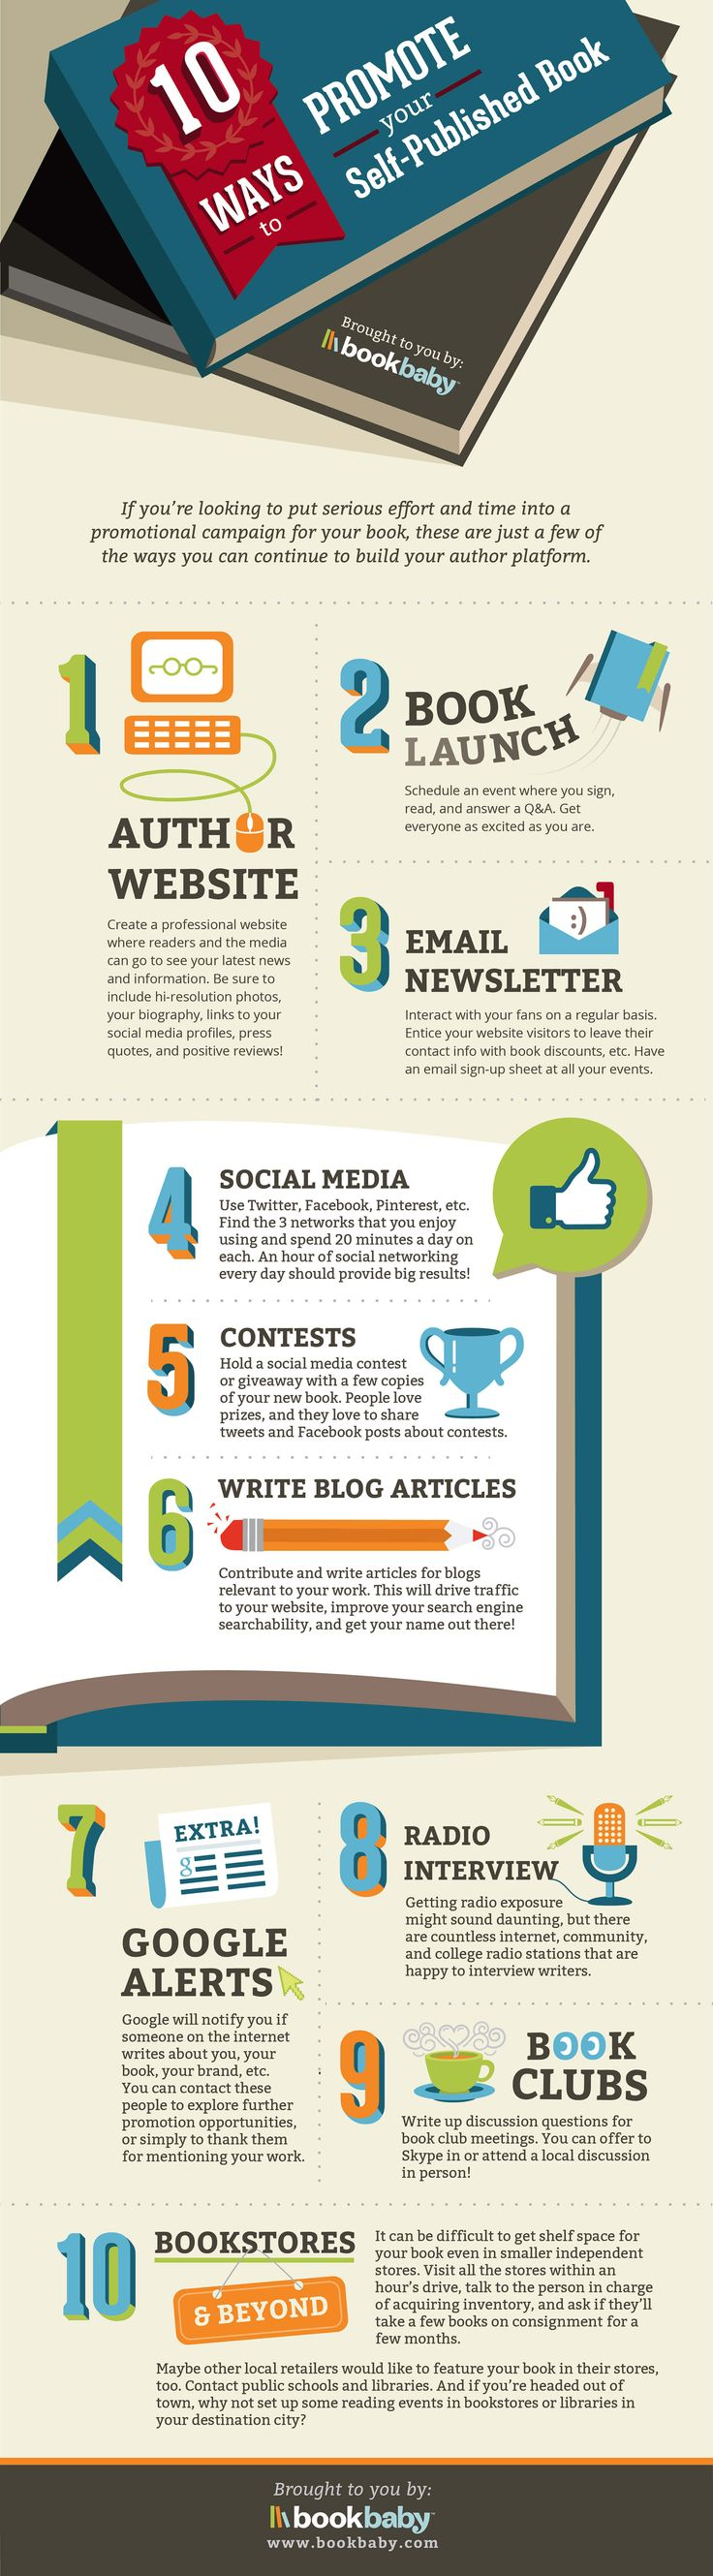 Infographic: How To Promote Your Self-Published Book